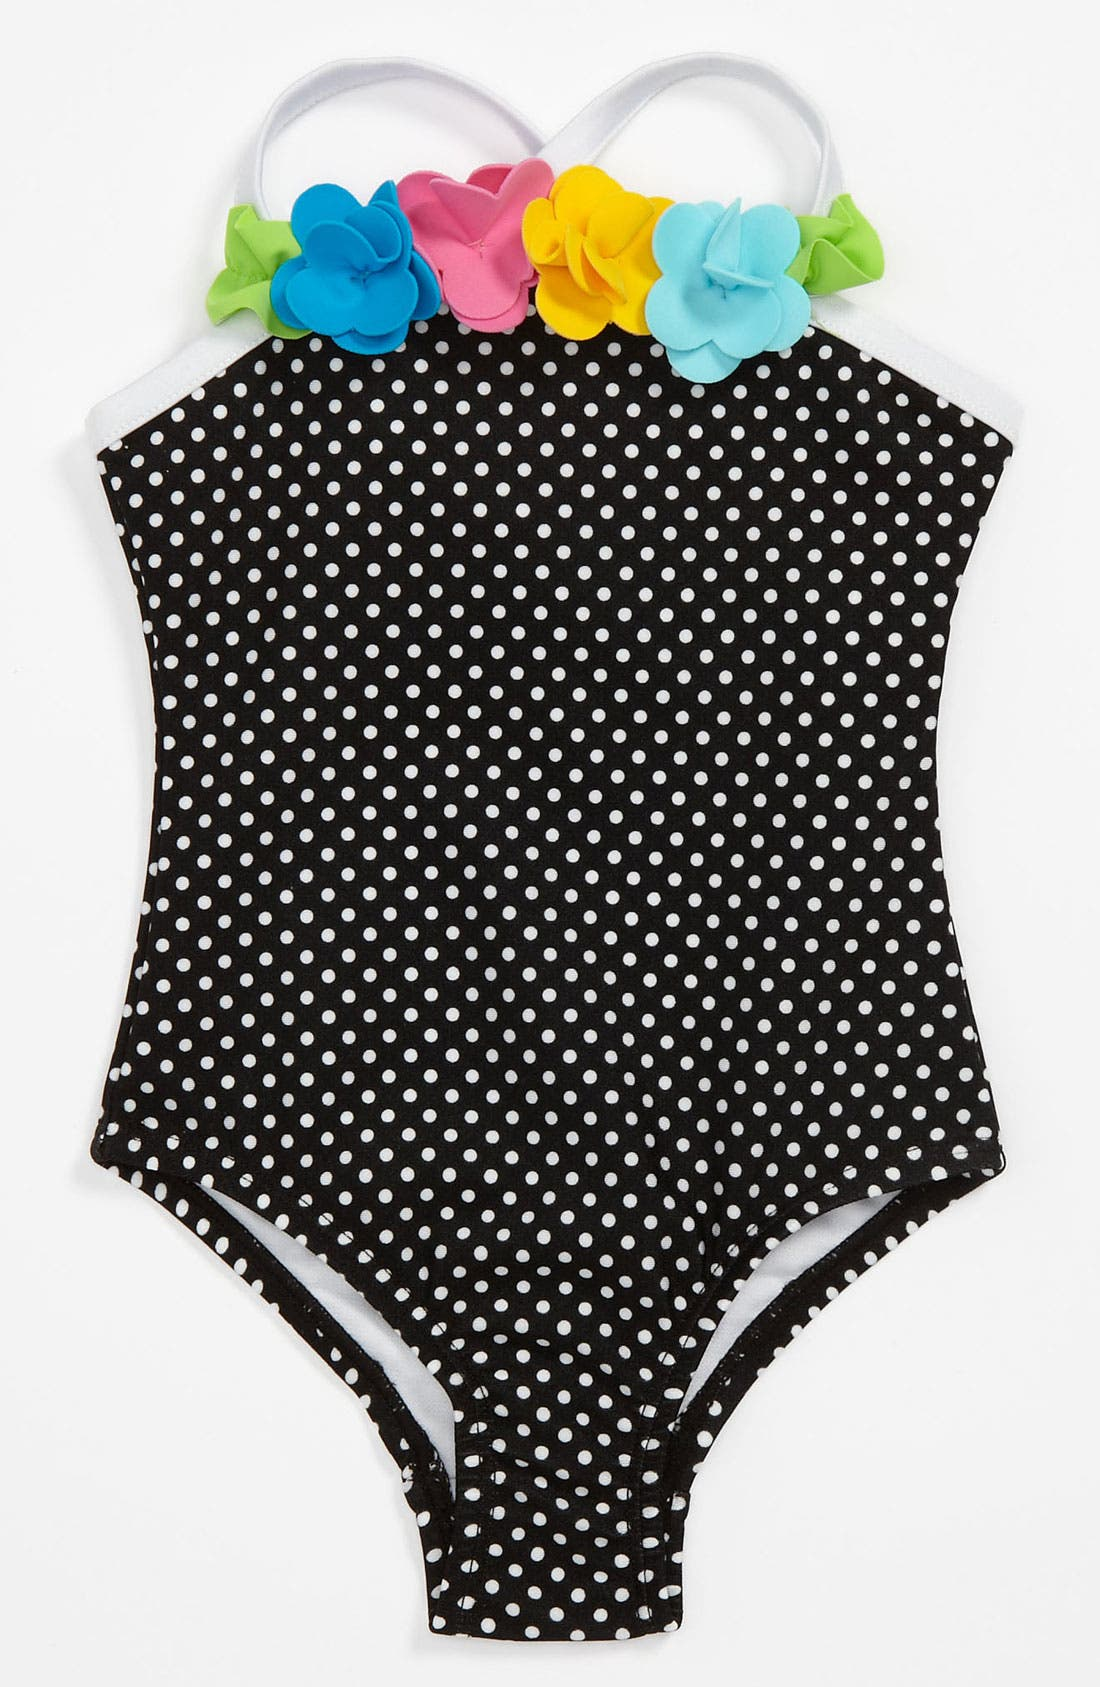 Main Image - Love U Lots One Piece Swimsuit (Baby)